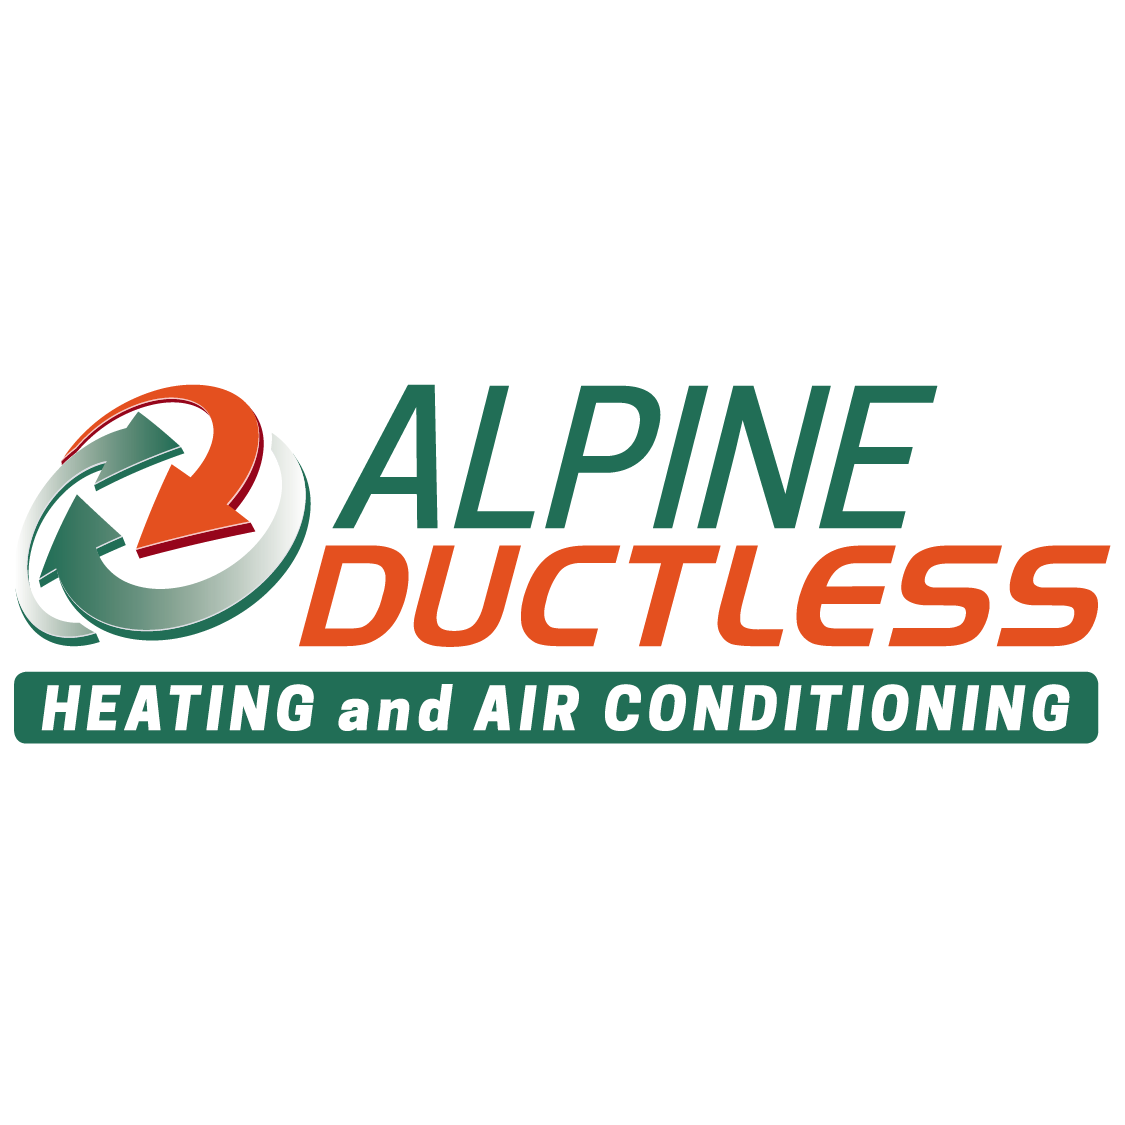 Alpine Ductless Heating And Air Conditioning In Olympia